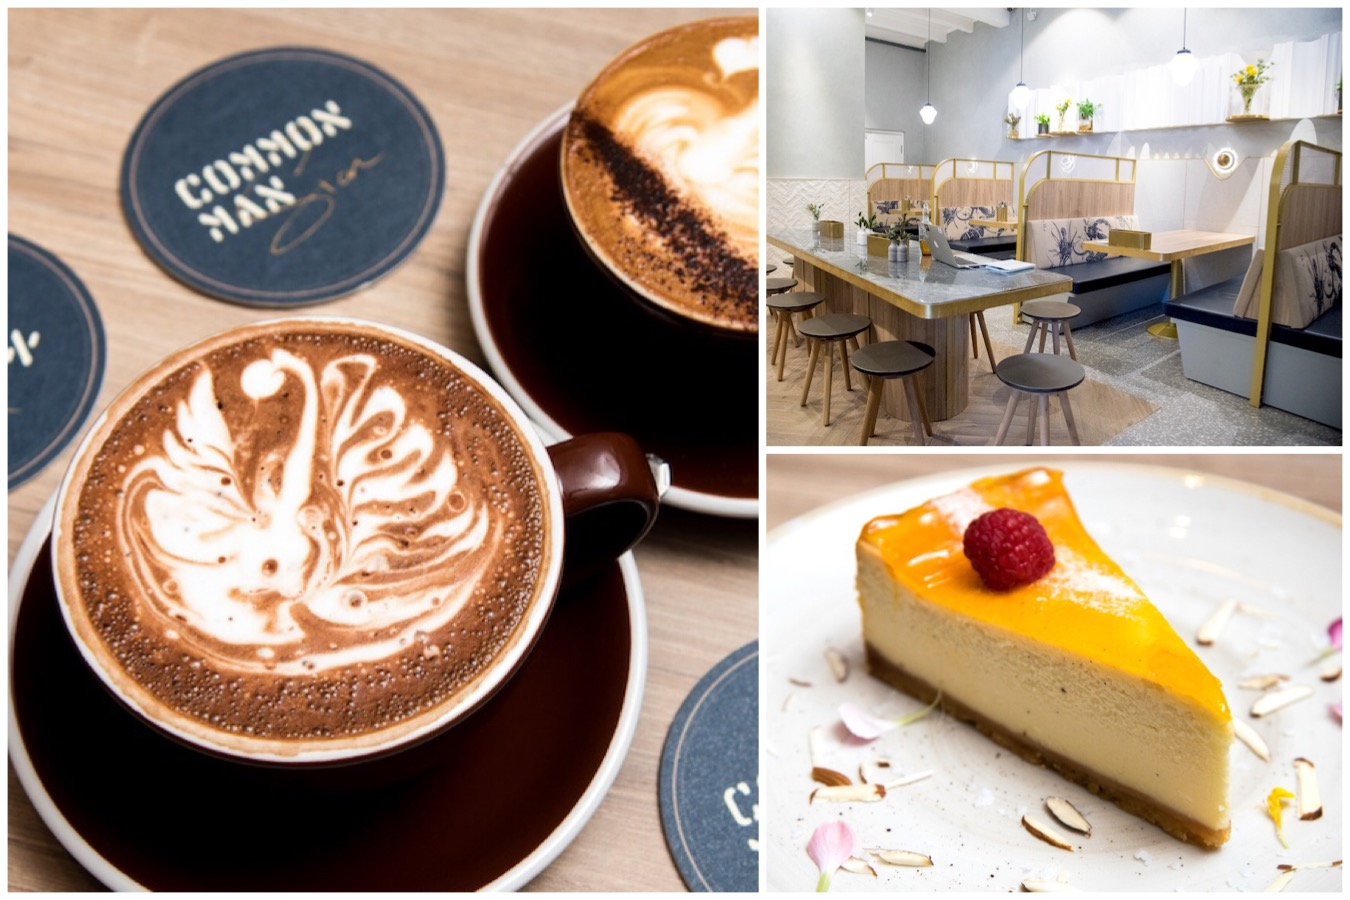 Common Man Stan - Popular Brunch And Coffee Place Opens 2nd Branch In The CBD, At Stanley Street